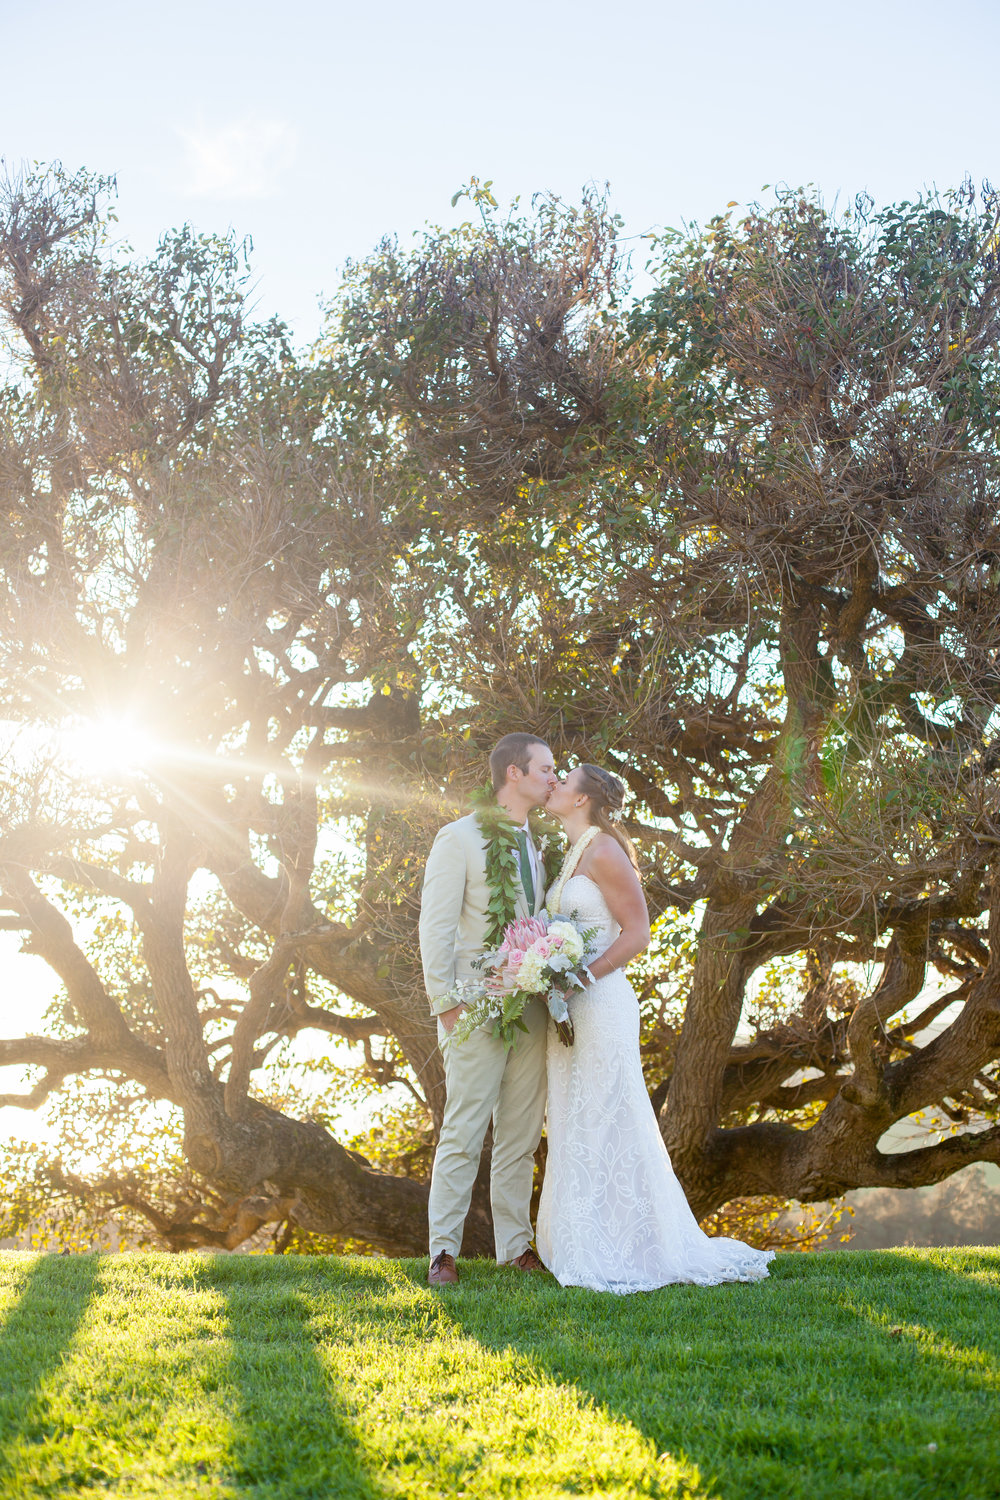 big island hawaii kahua ranch wedding © kelilina photography 20170106173325.jpg